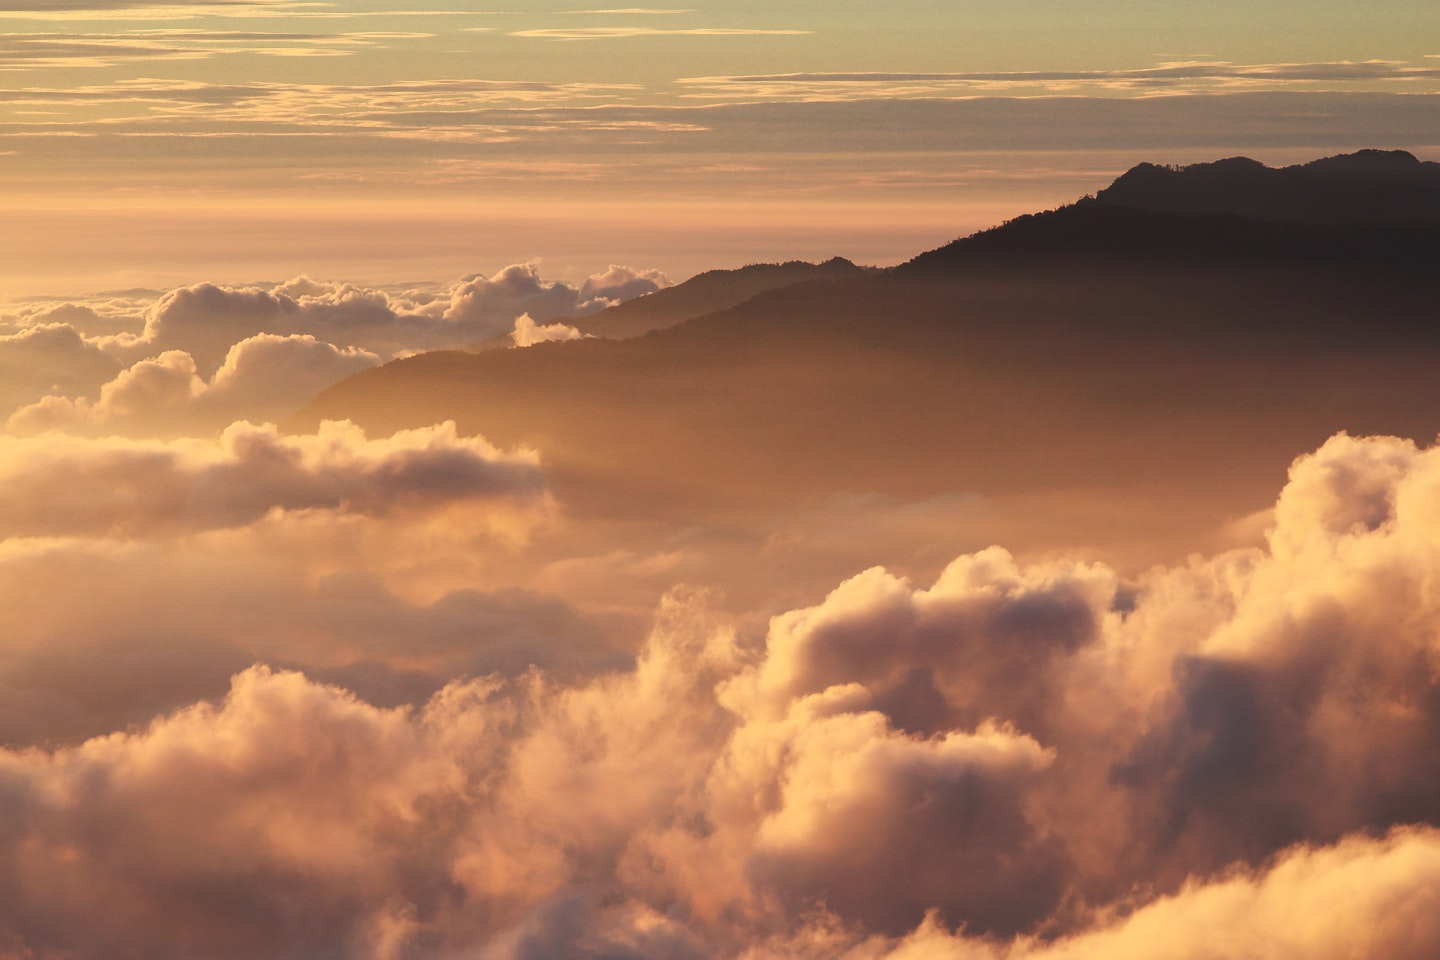 Silhouette of Mountain With Fluffy Clouds during Sunset, Clouds, Dawn, Dusk, Mountain, HQ Photo